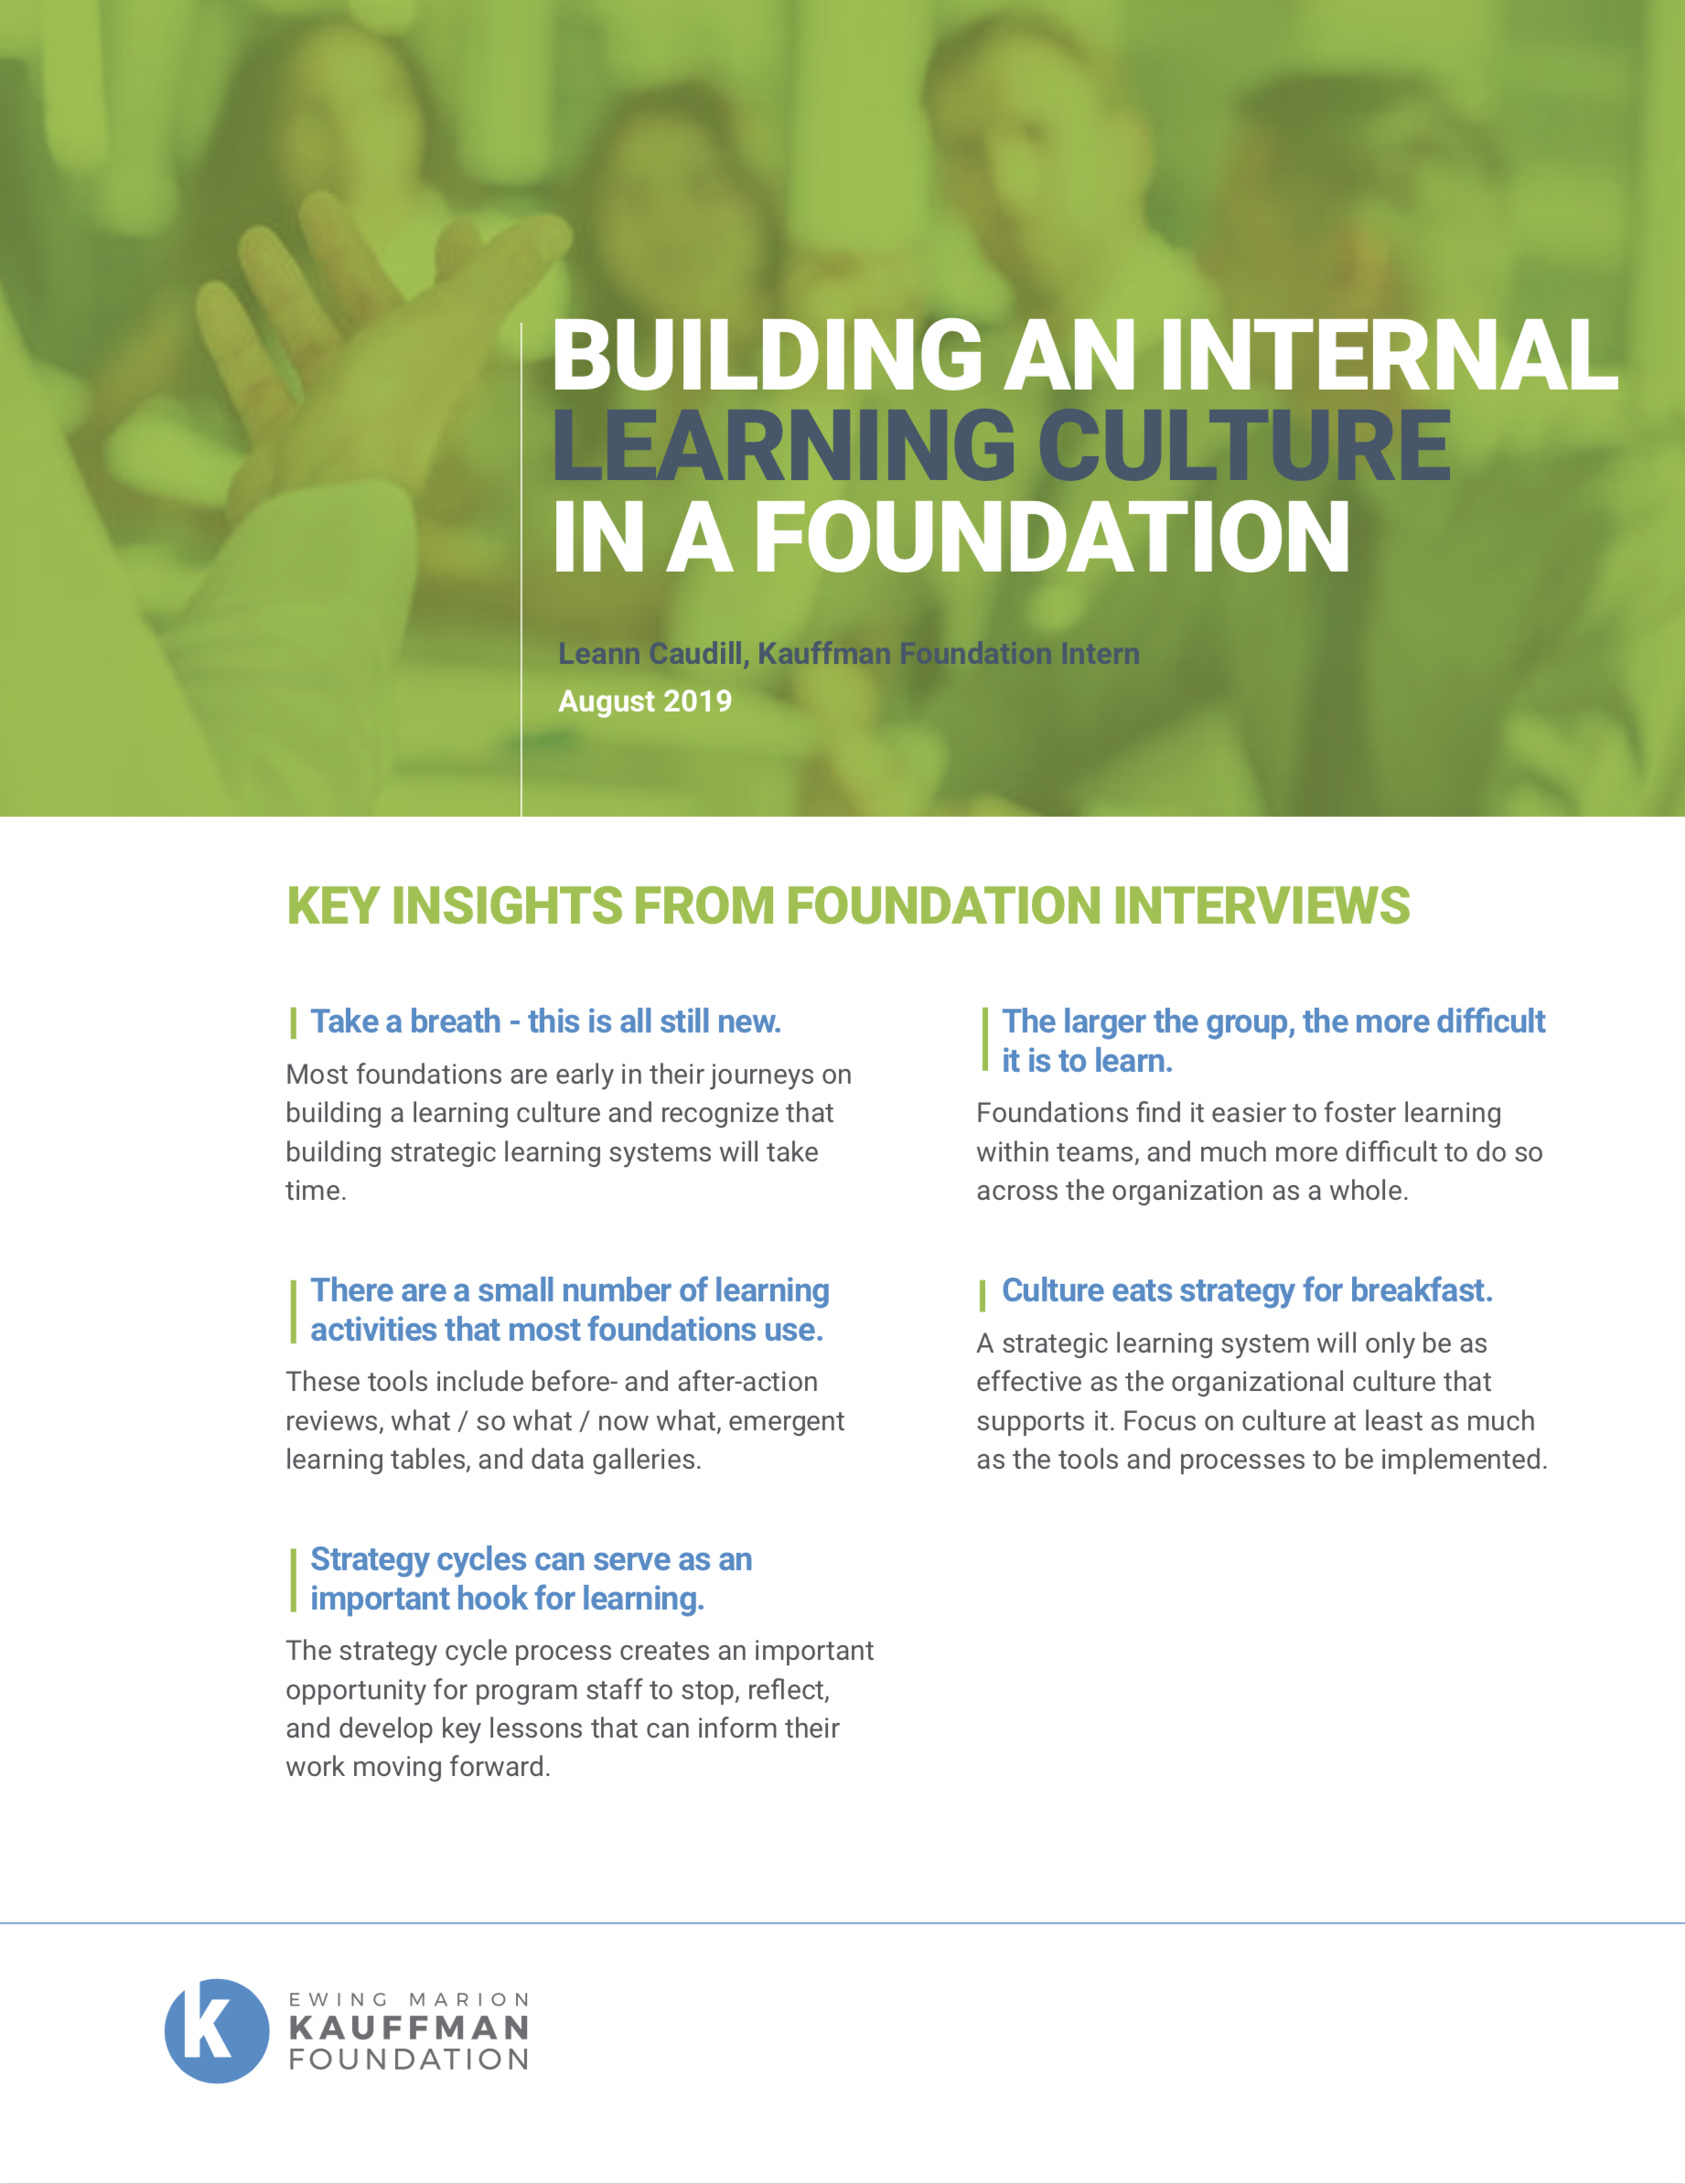 Building an Internal Learning Culture in a Foundation